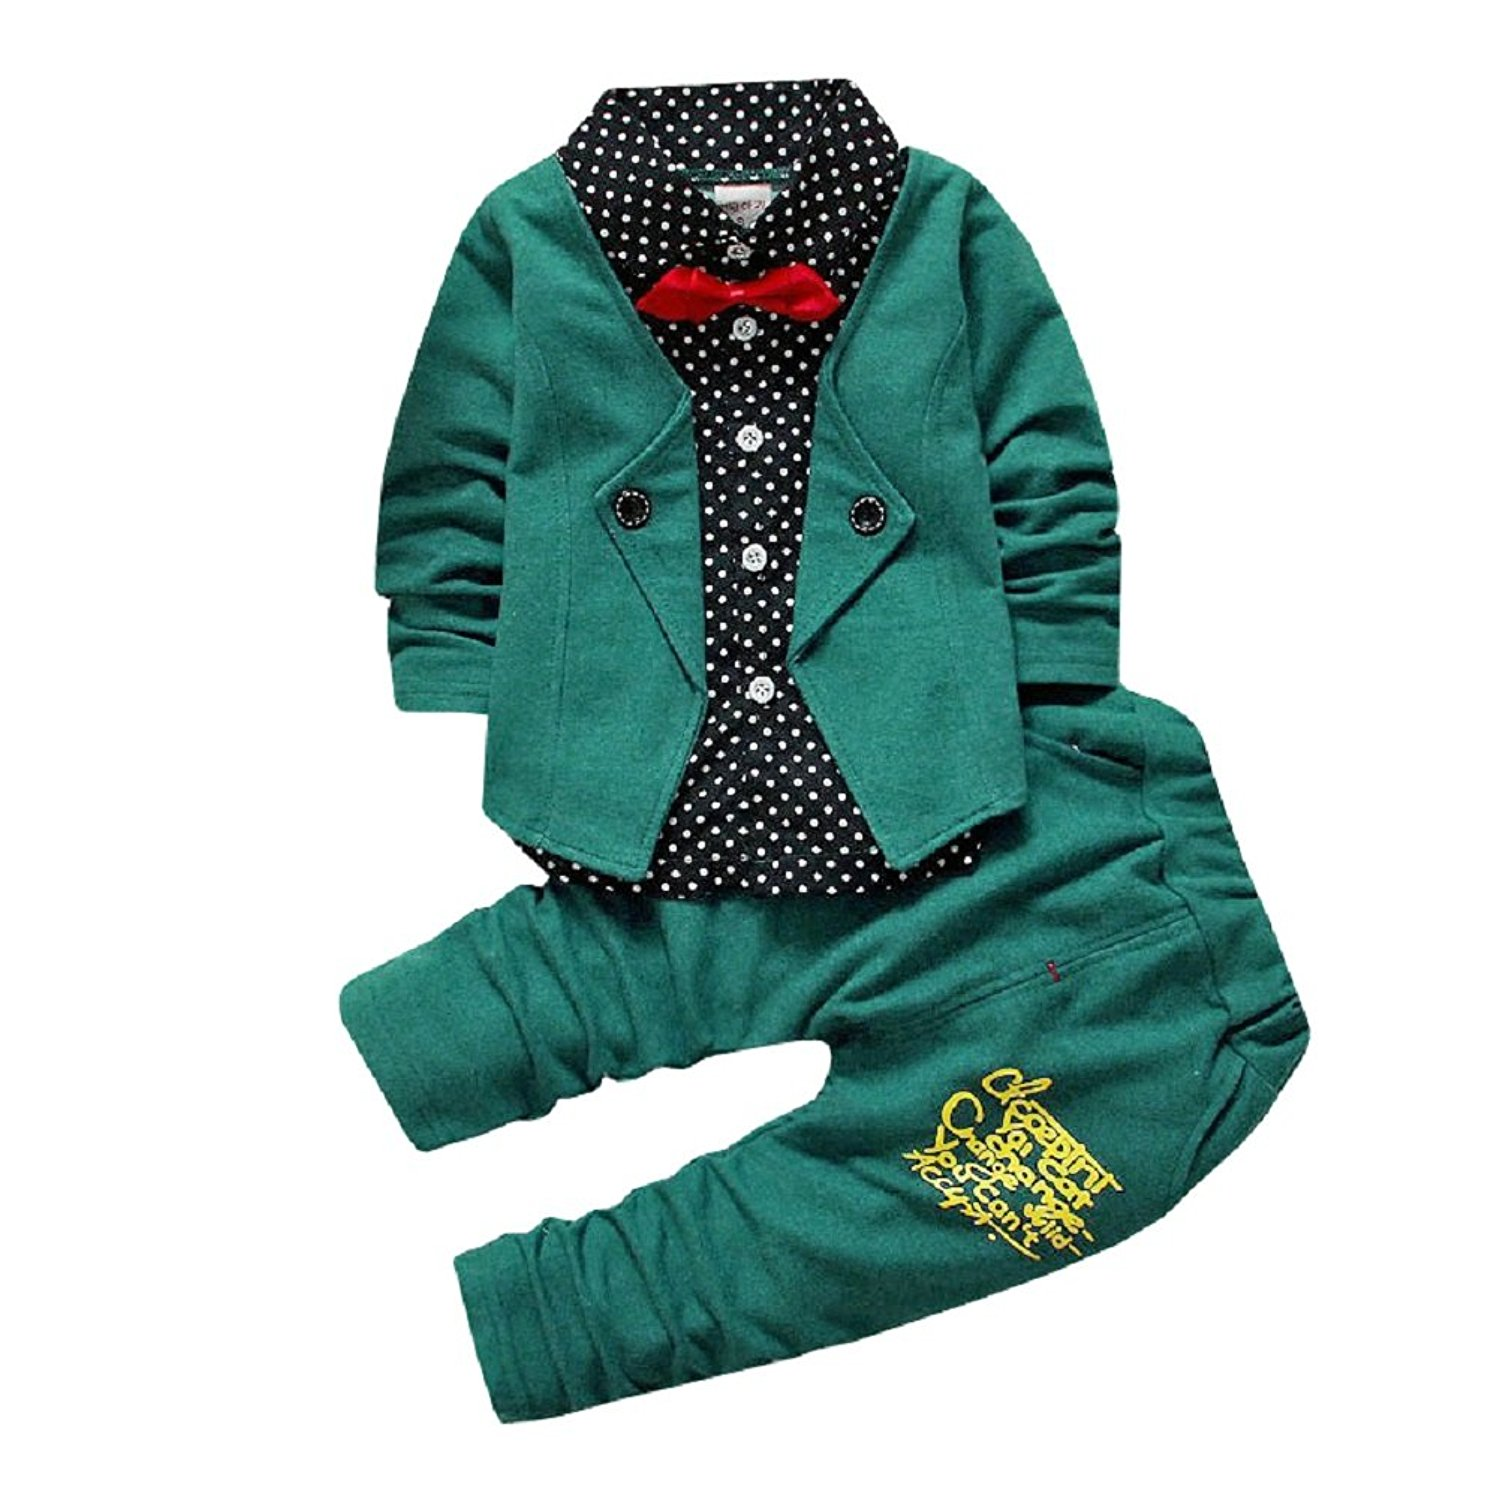 a2d019ab63a Get Quotations · thAmi Kids 2-Piece Suits Gentry Formal Party Tracksuits  Outfits With Bowtie Infant Toddler Boys